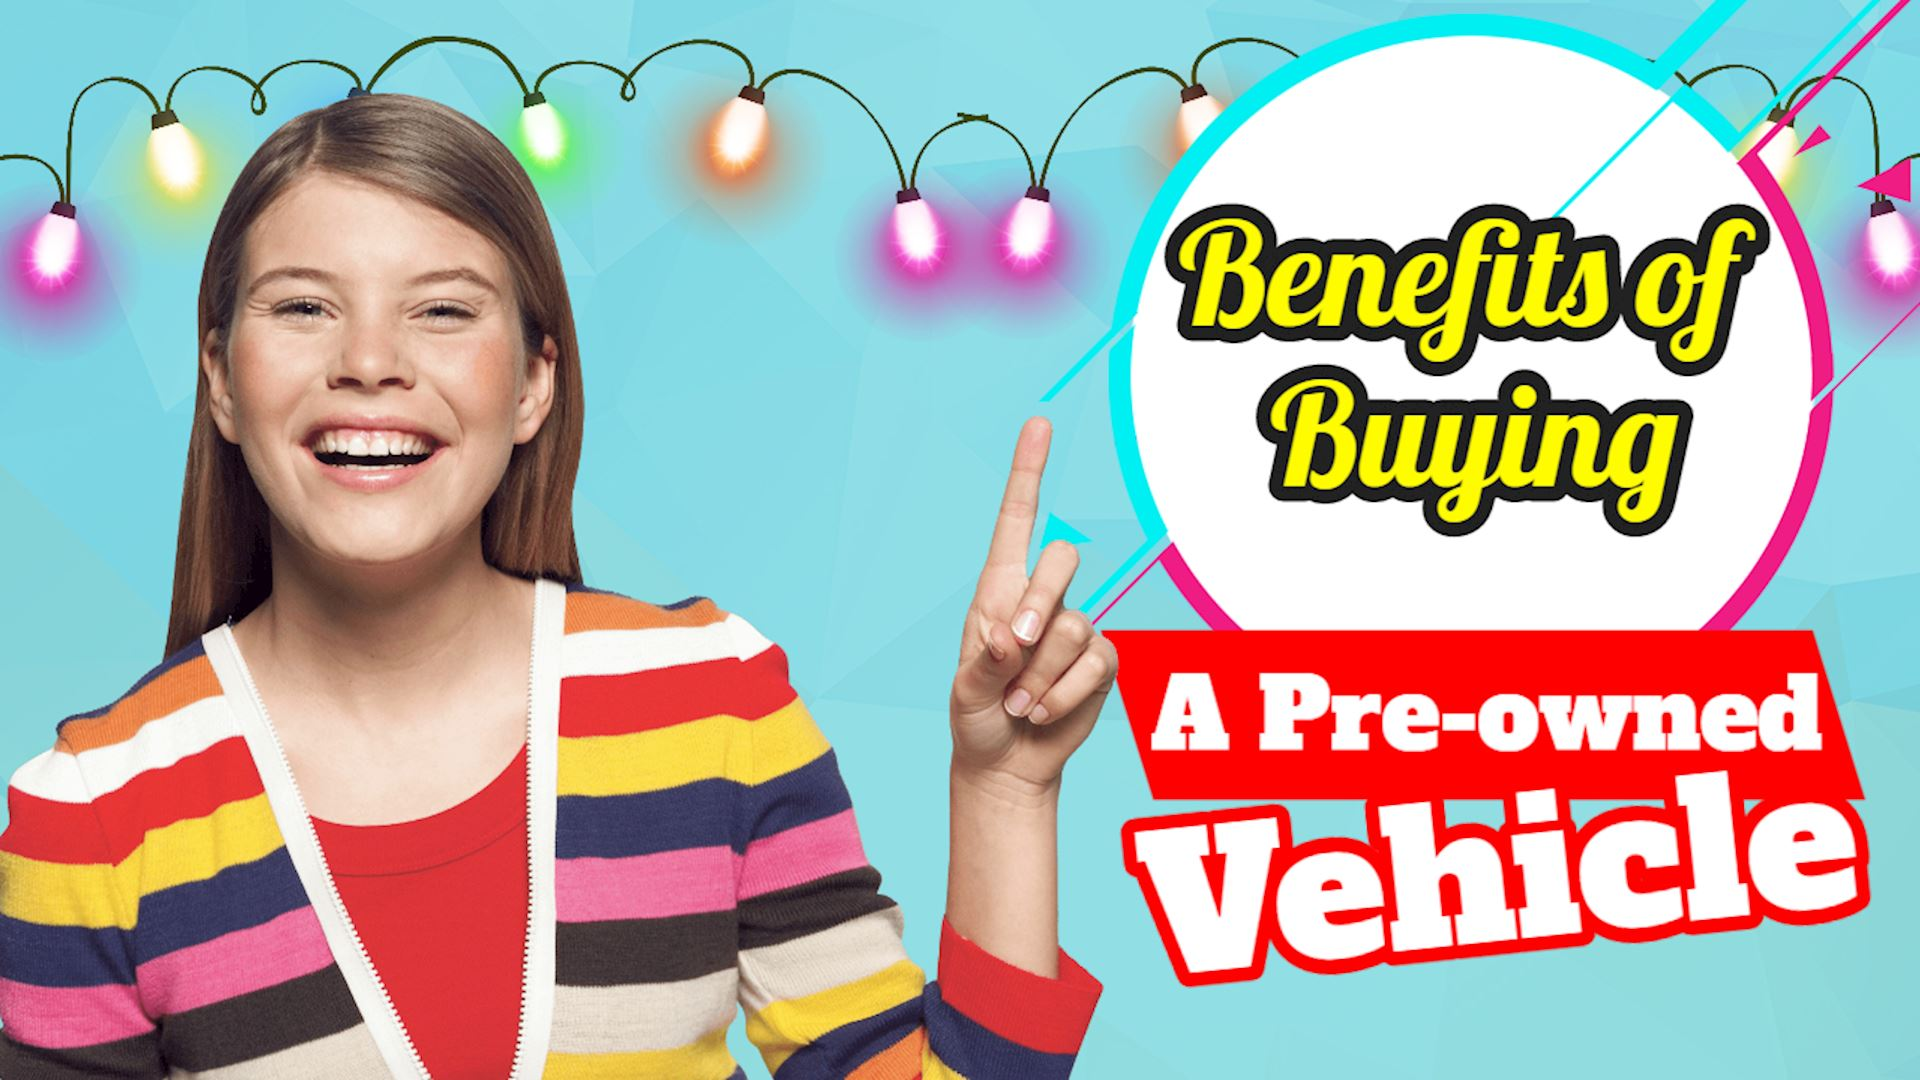 Benefits of Buying a Pre-Owned Vehicle